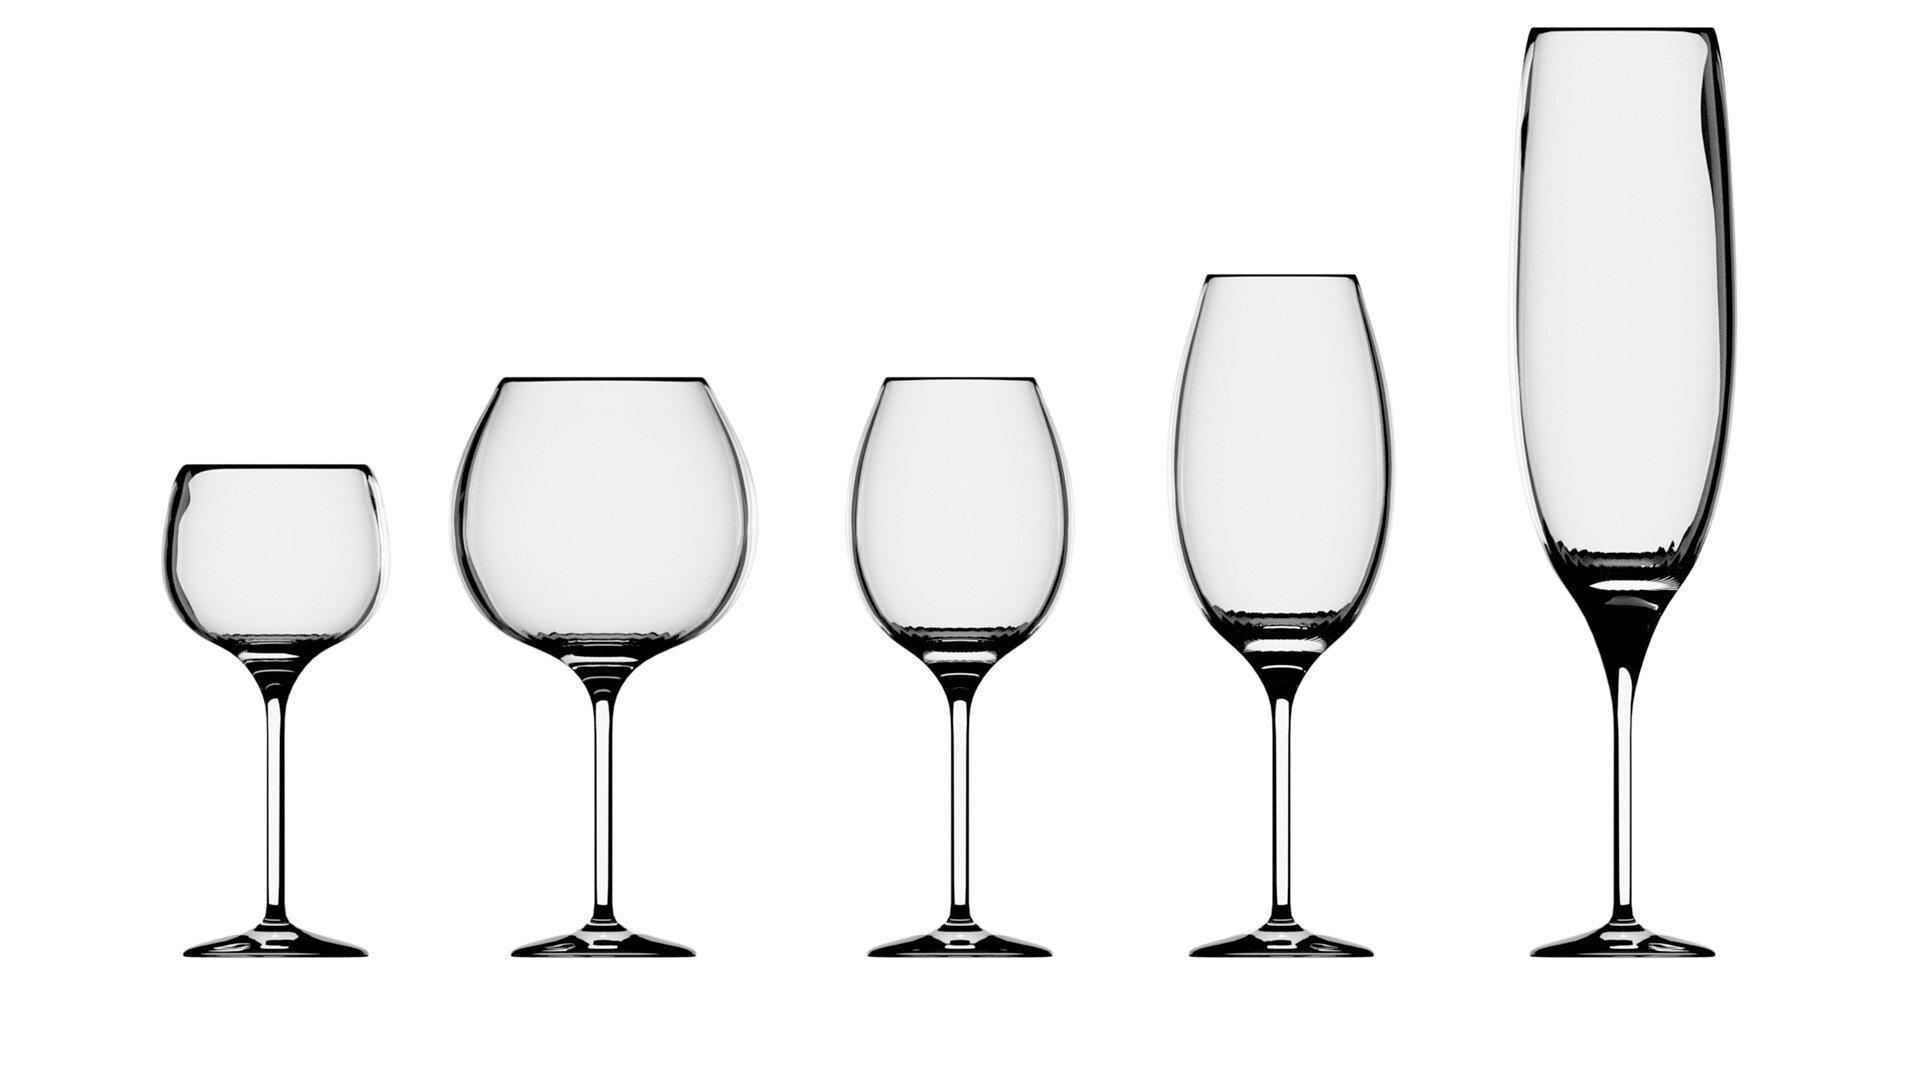 What is the best glass to serve each wine?